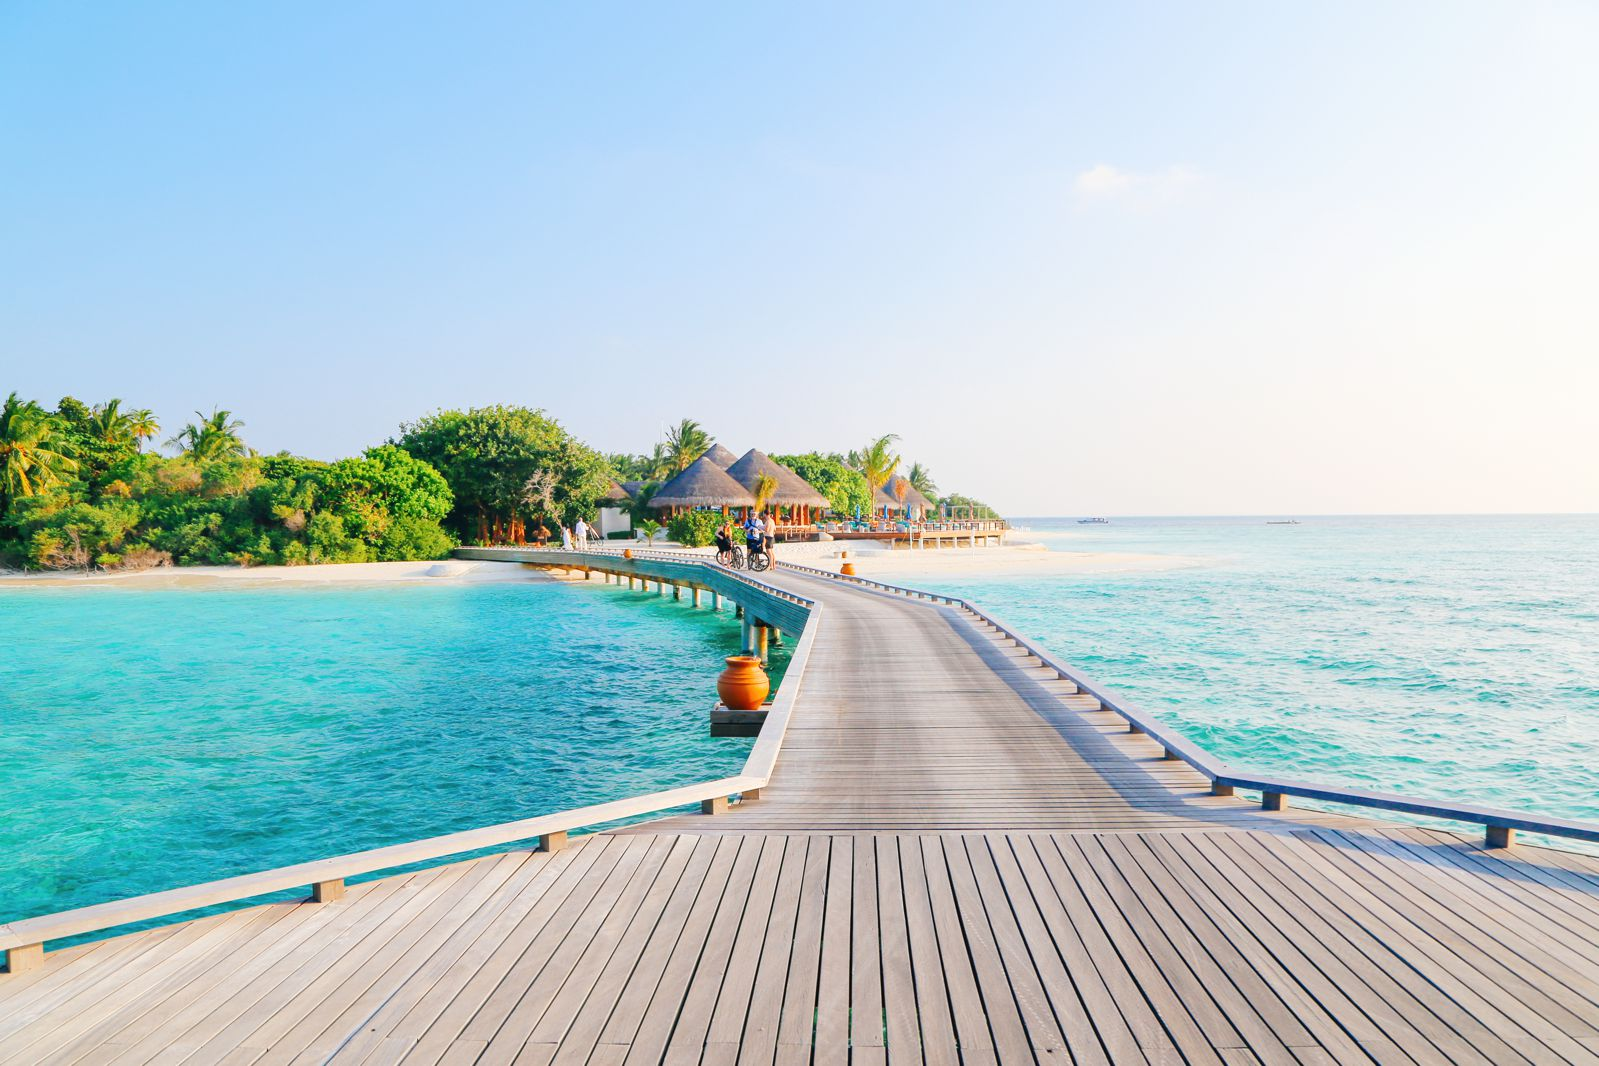 Arrival At The Dusit Thani In The Maldives! (42)